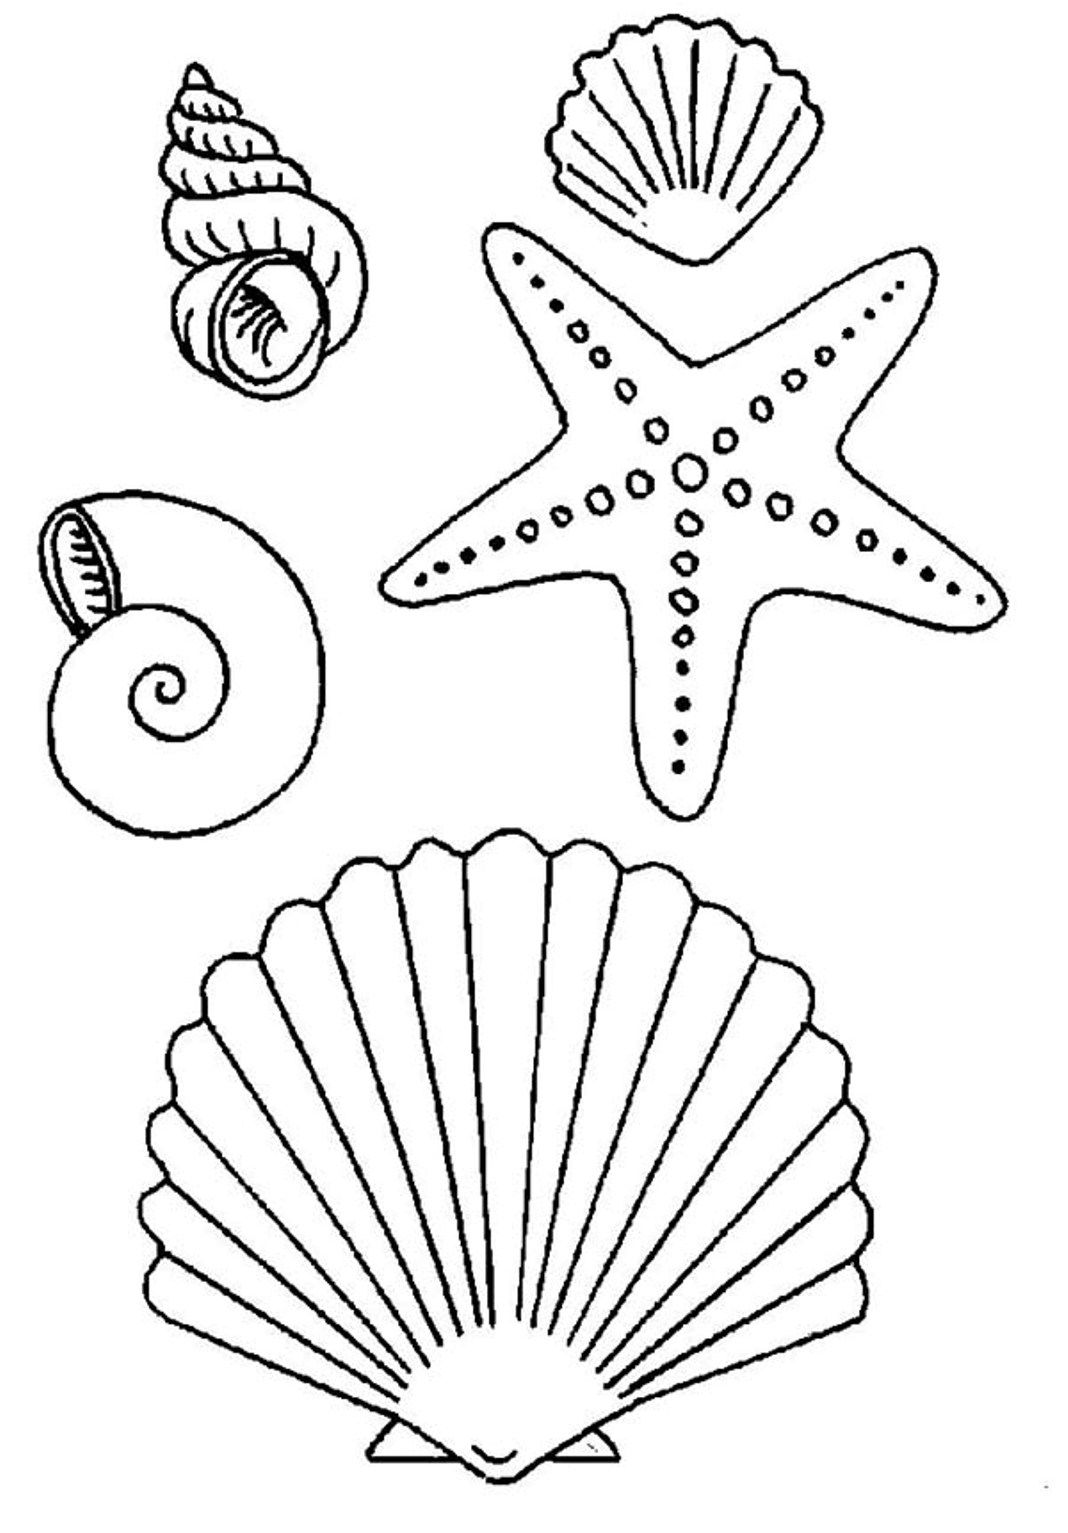 seashell coloring pages - photo#33